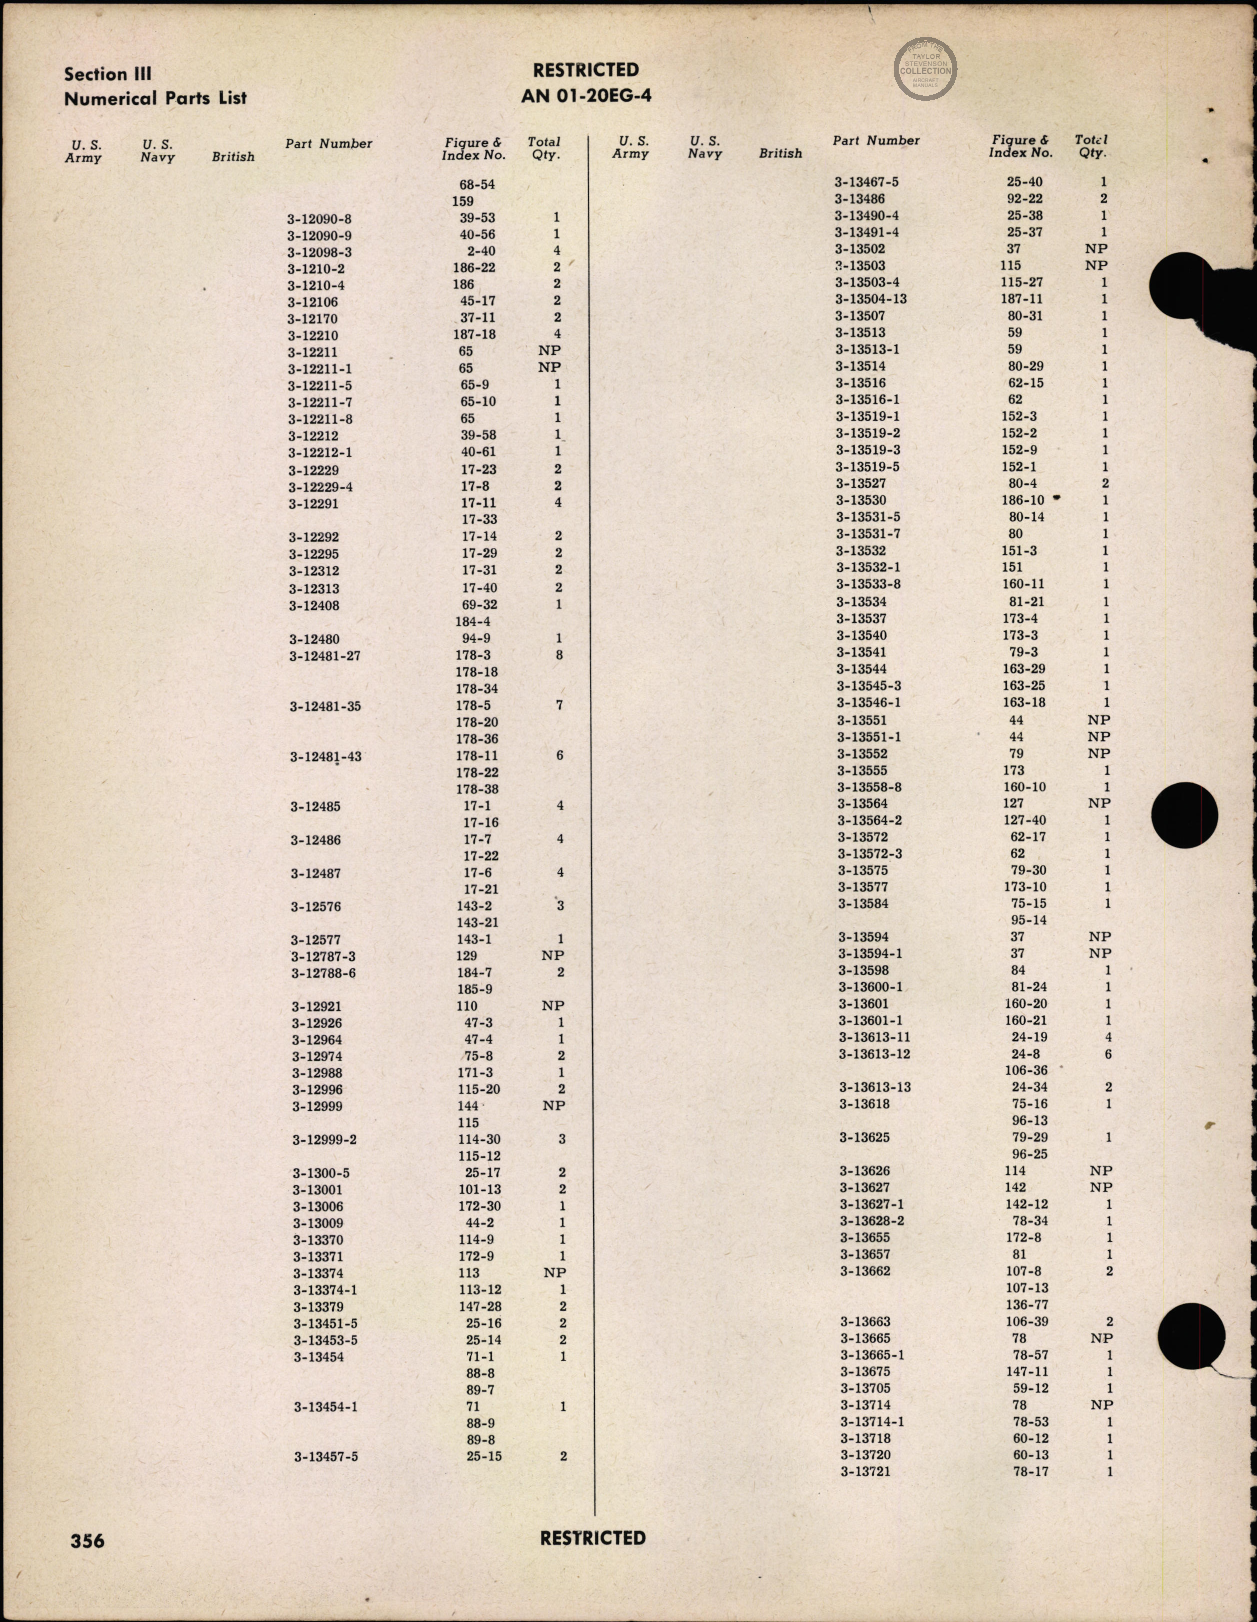 Sample page 362 from AirCorps Library document: Parts Catalog - B-17